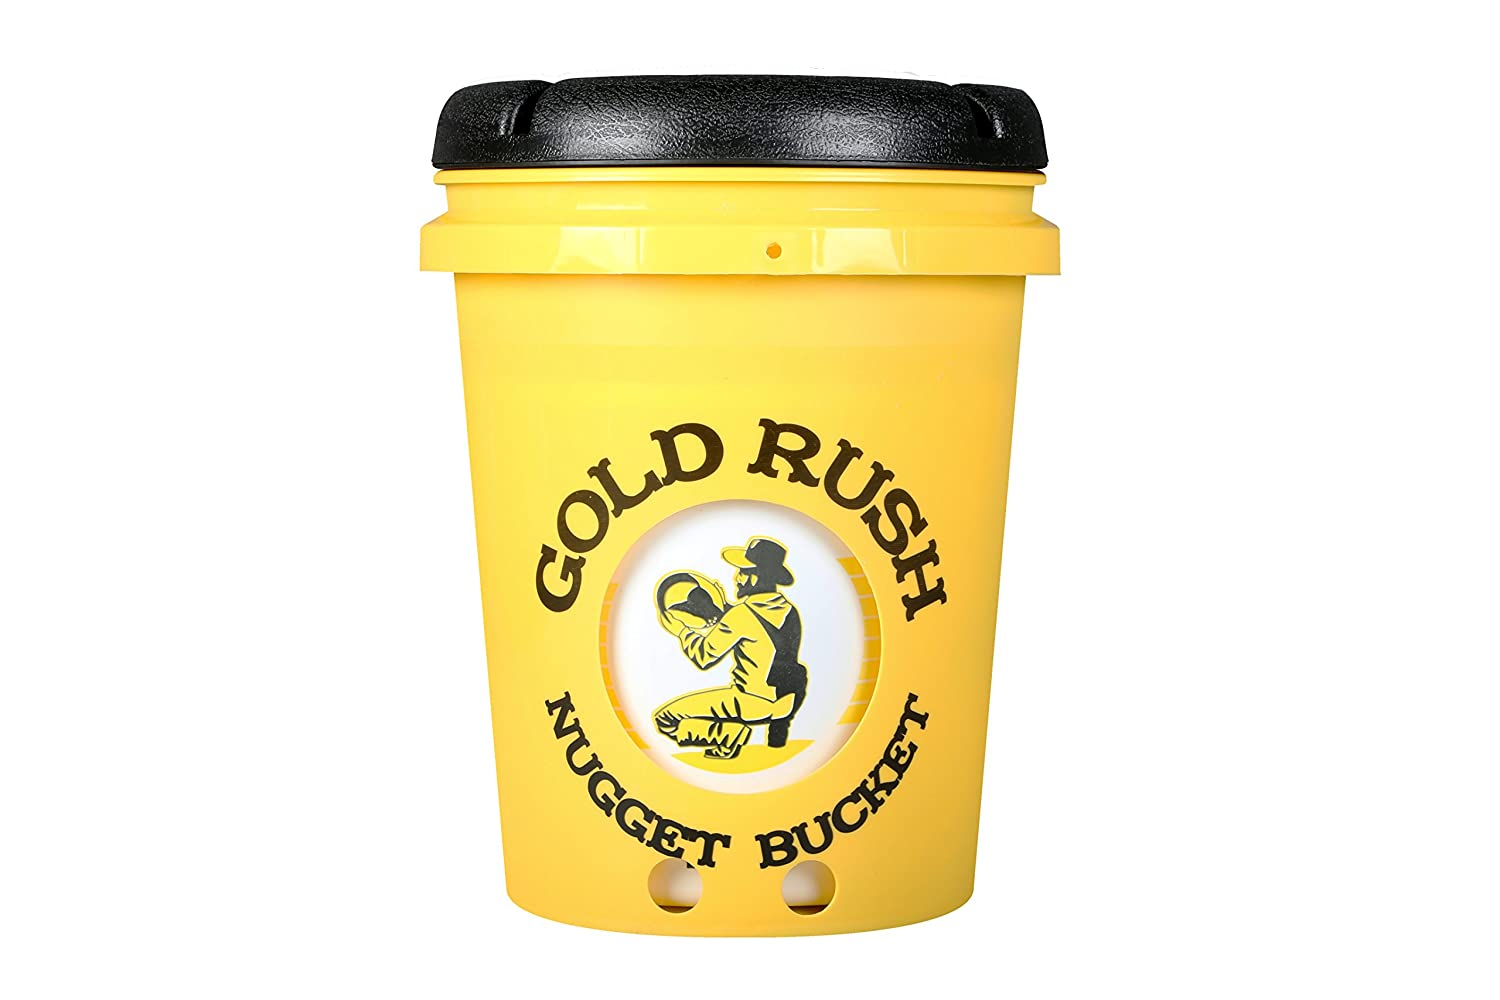 Gold Rush Nugget Bucket Bateo de oro y prospección Kit Amarillo: Amazon.es: Hogar